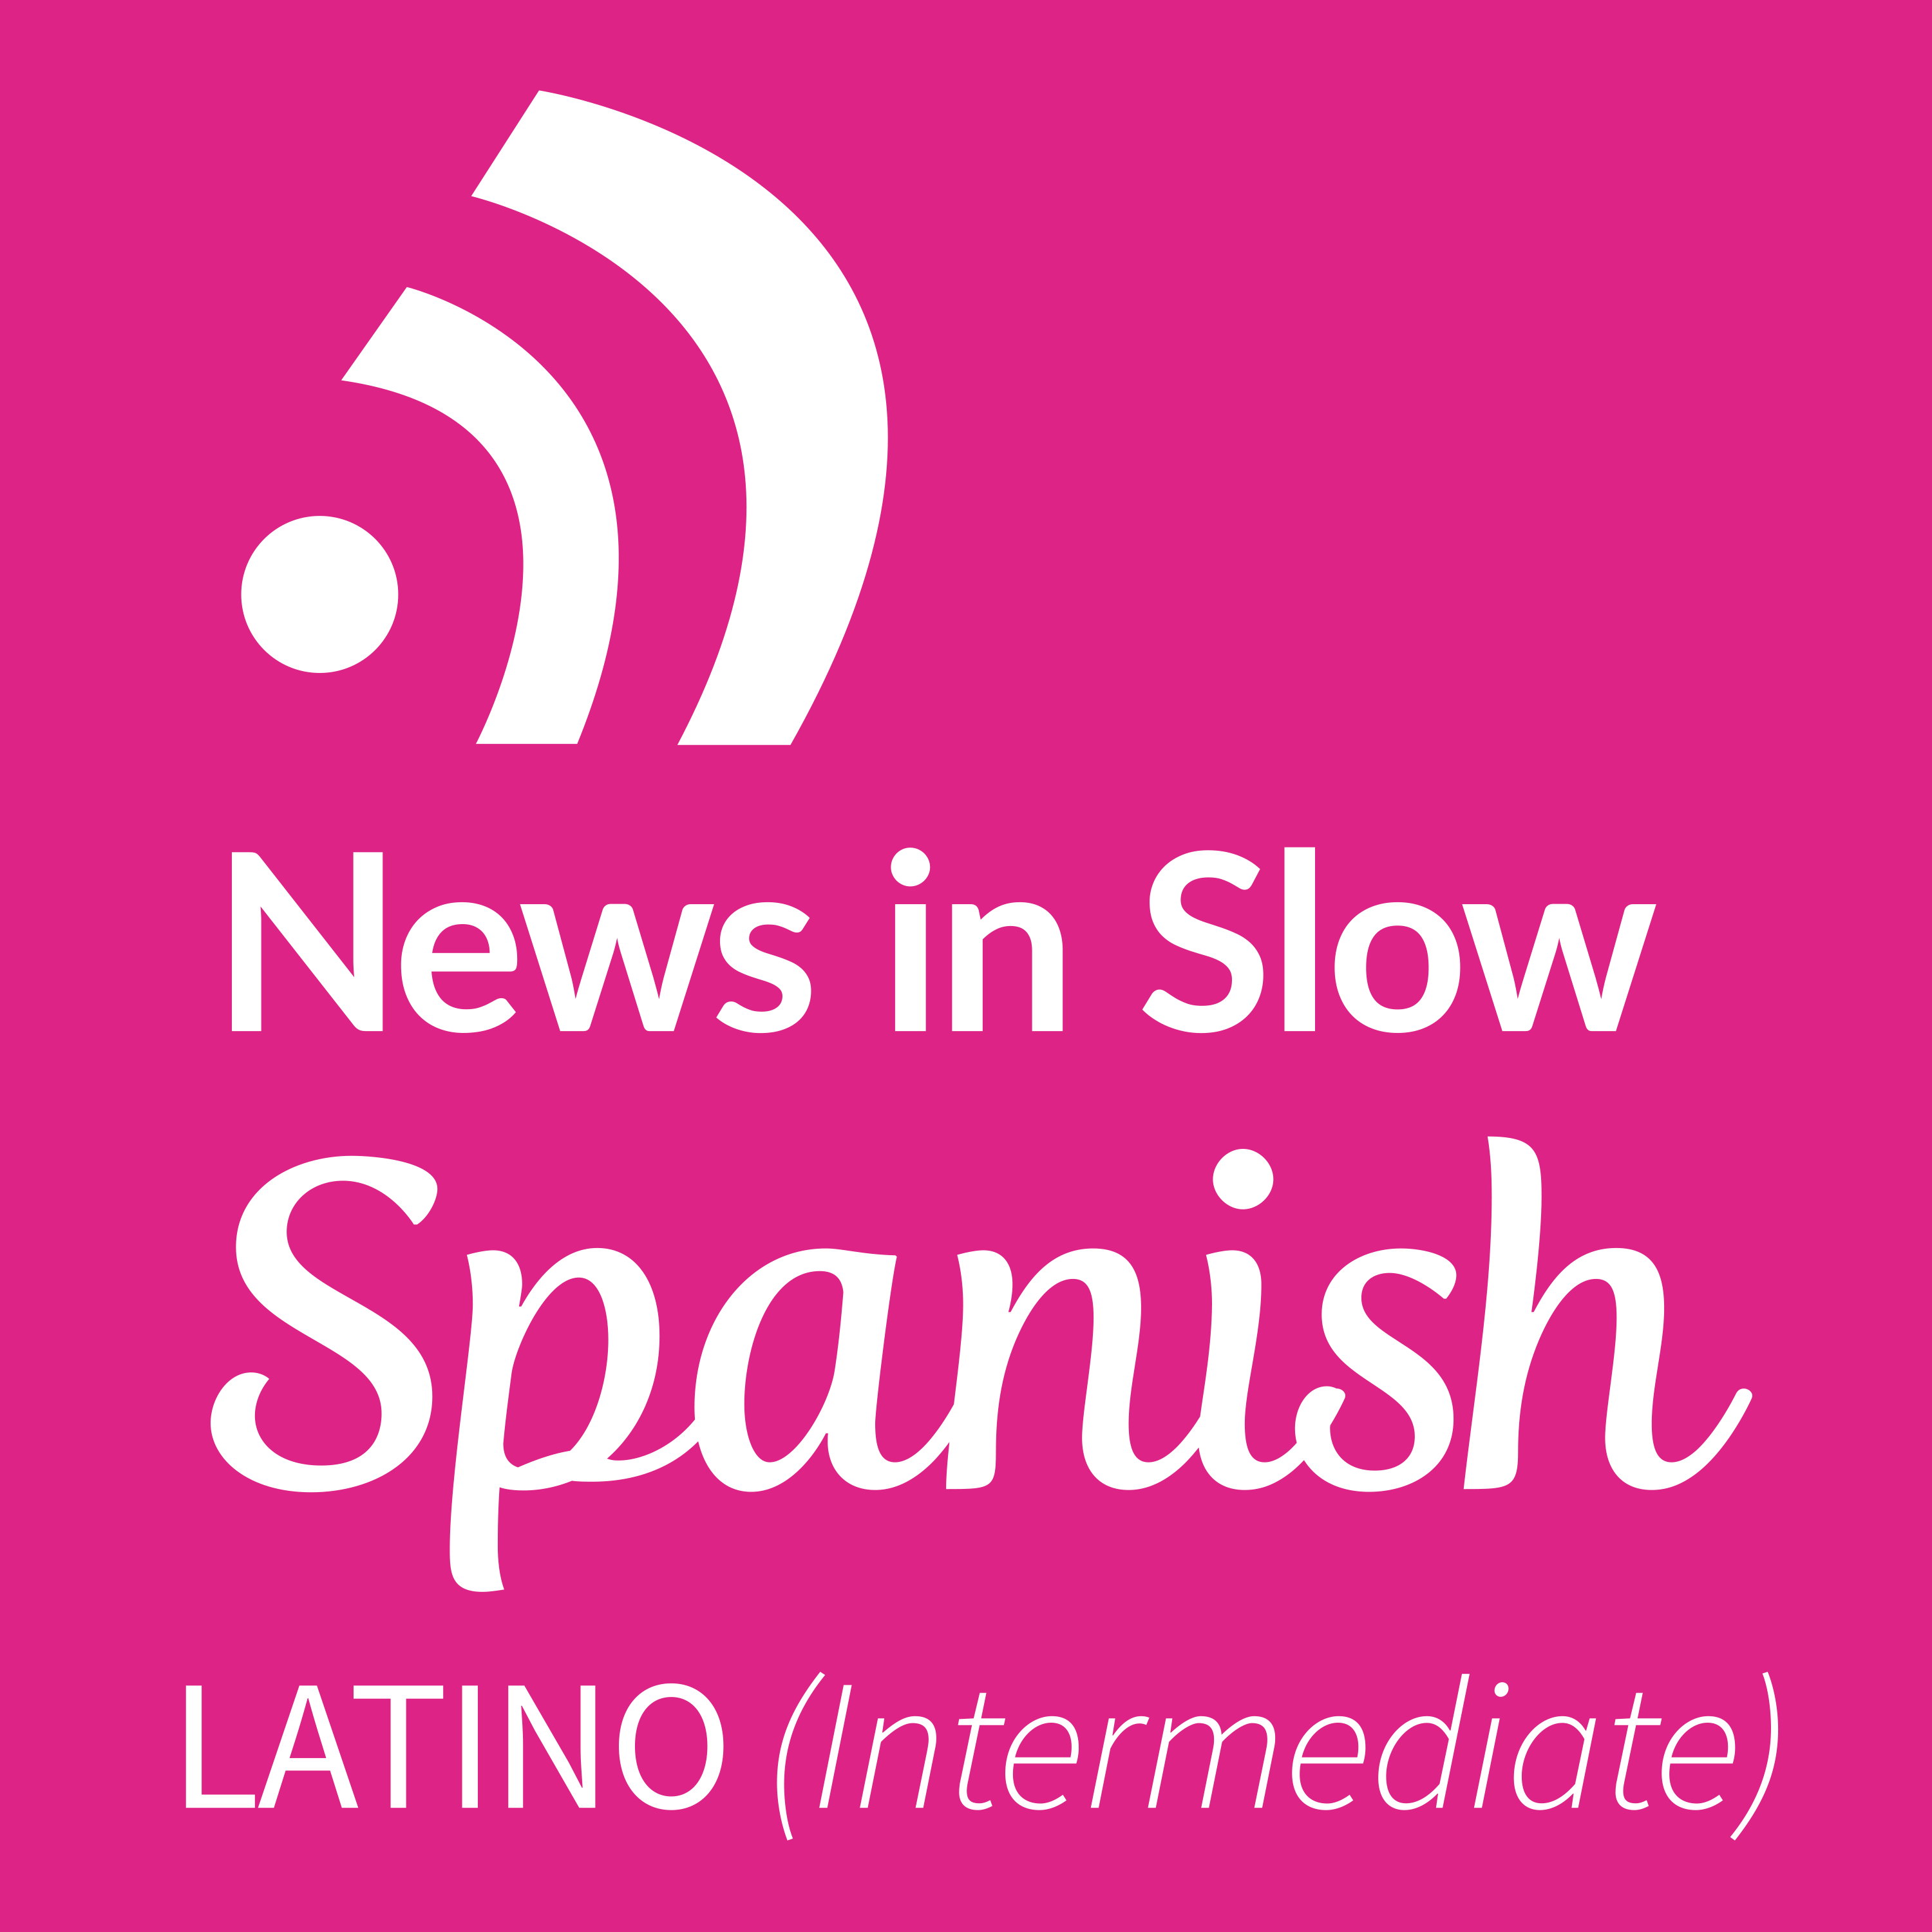 News in Slow Spanish Latino - # 185 - Learn Spanish through current events